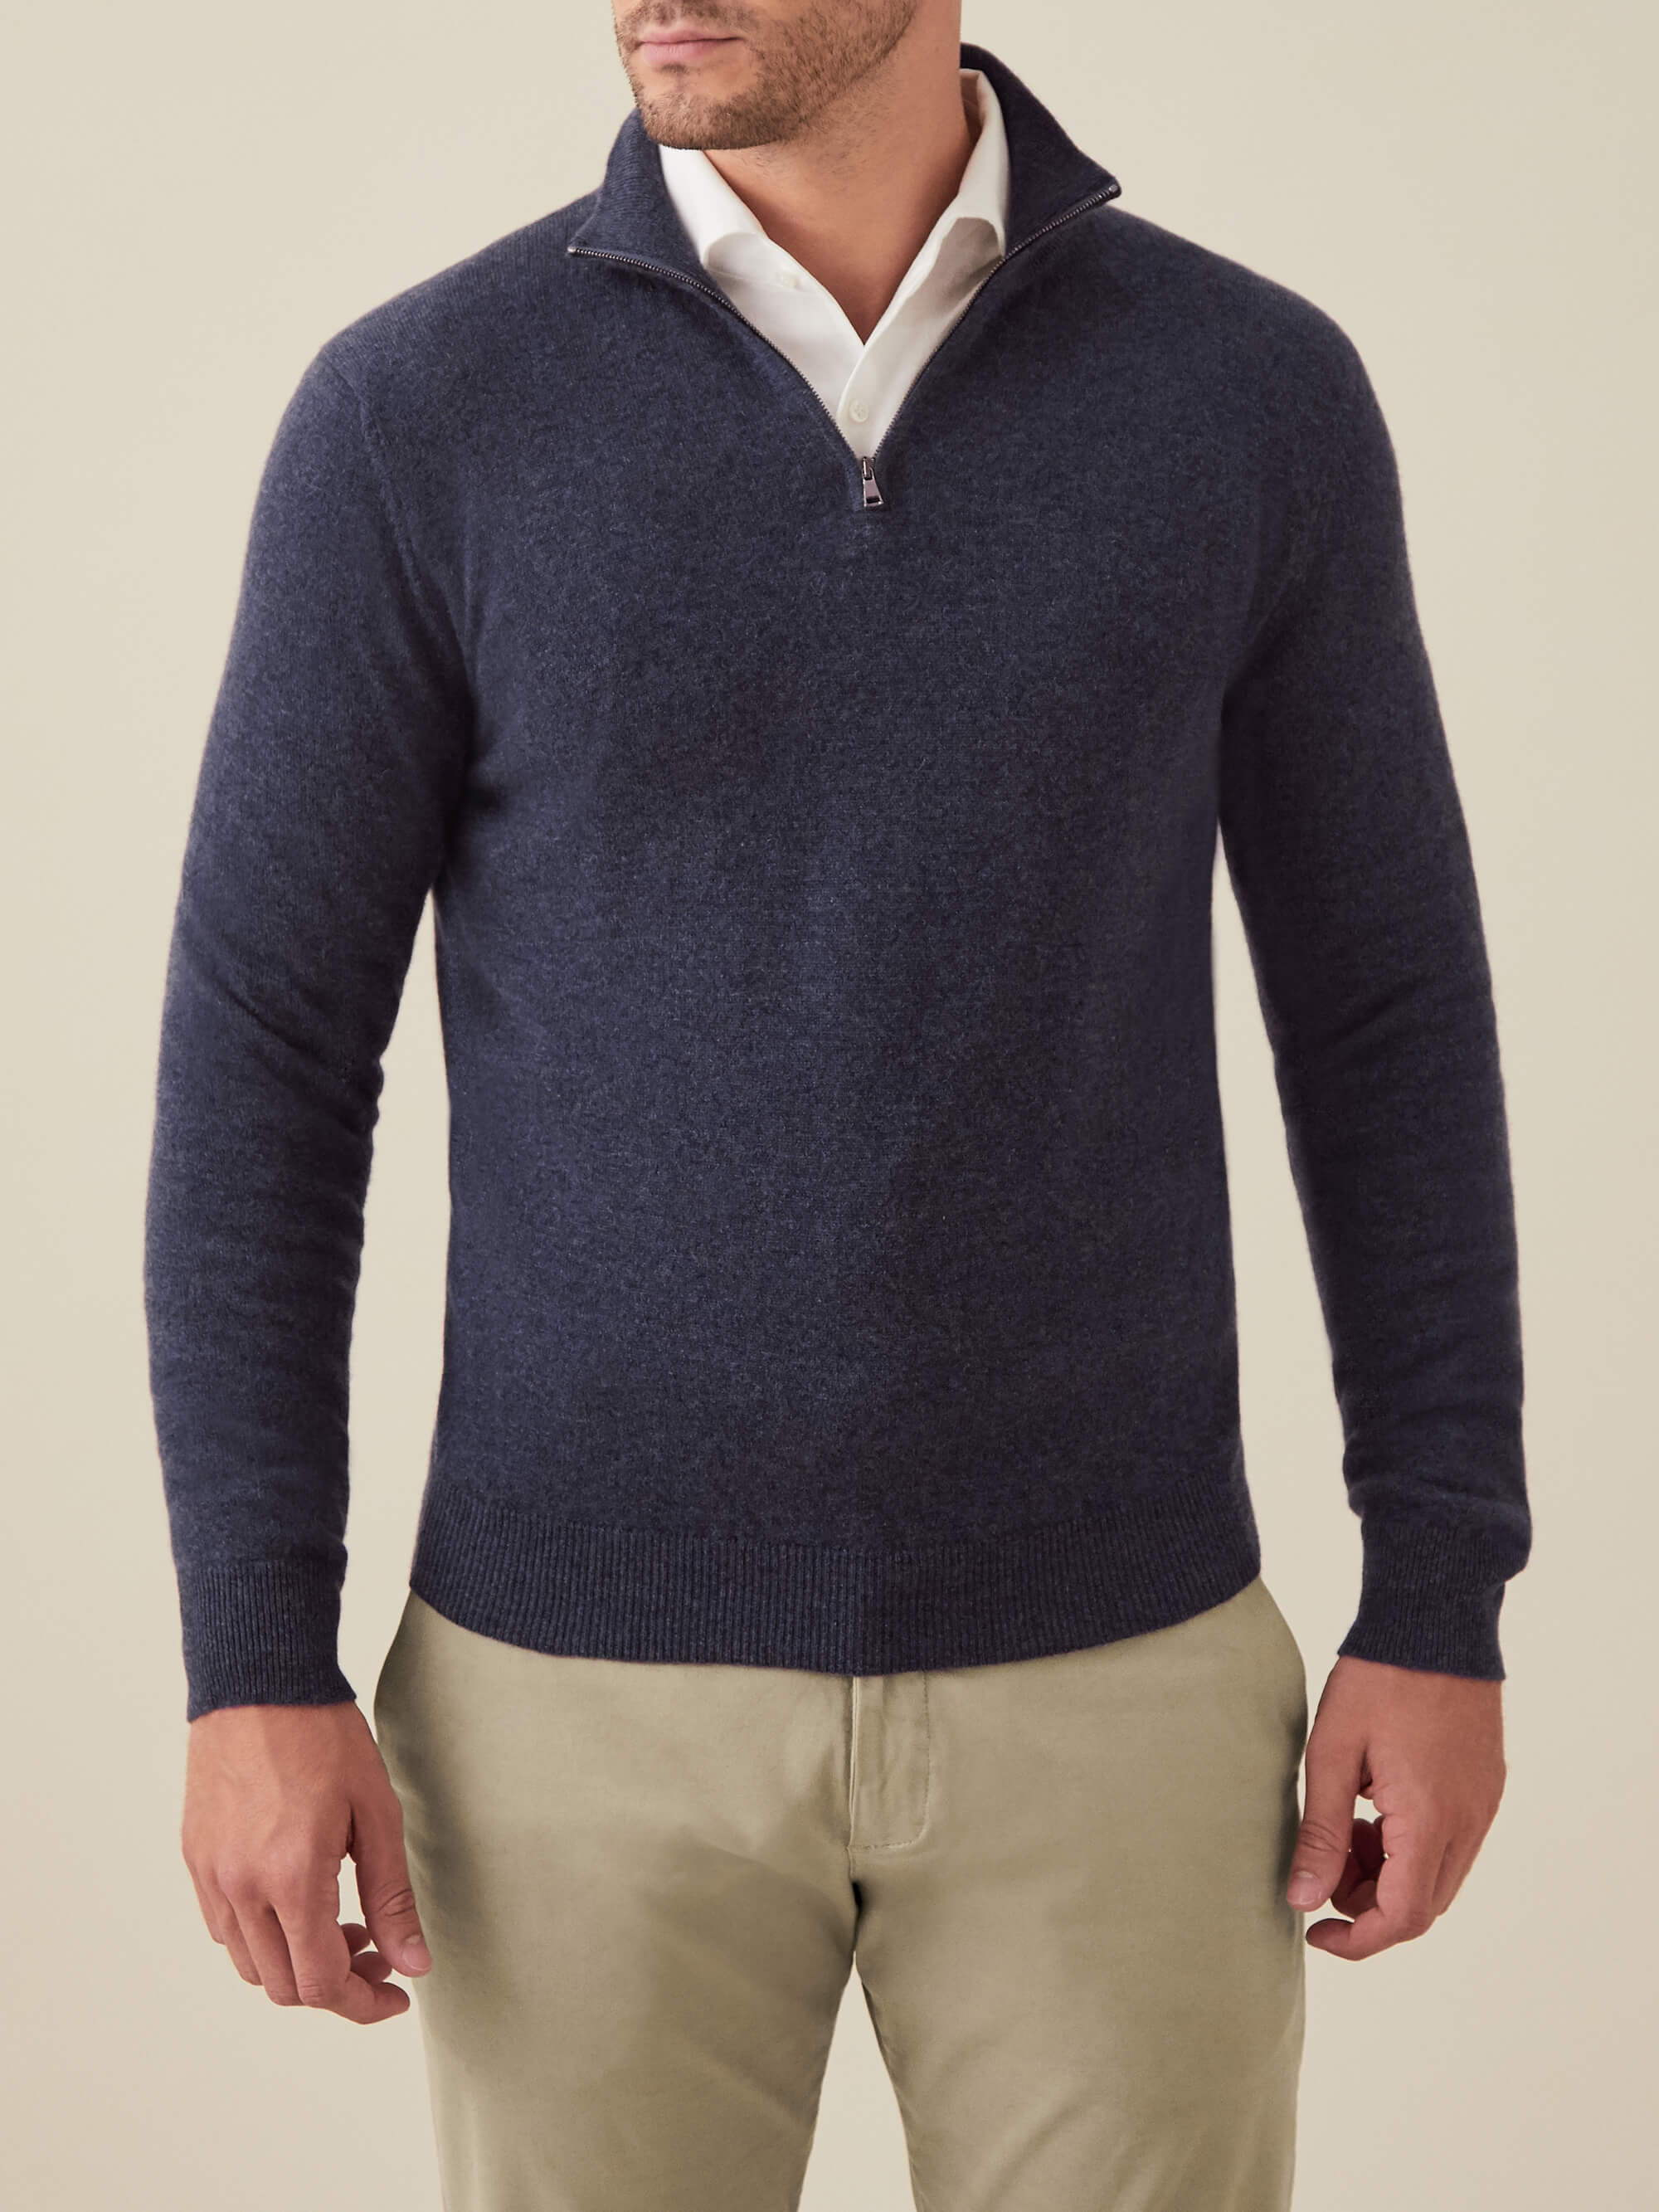 Luca Faloni Blue Cashmere Zip-up Made in Italy